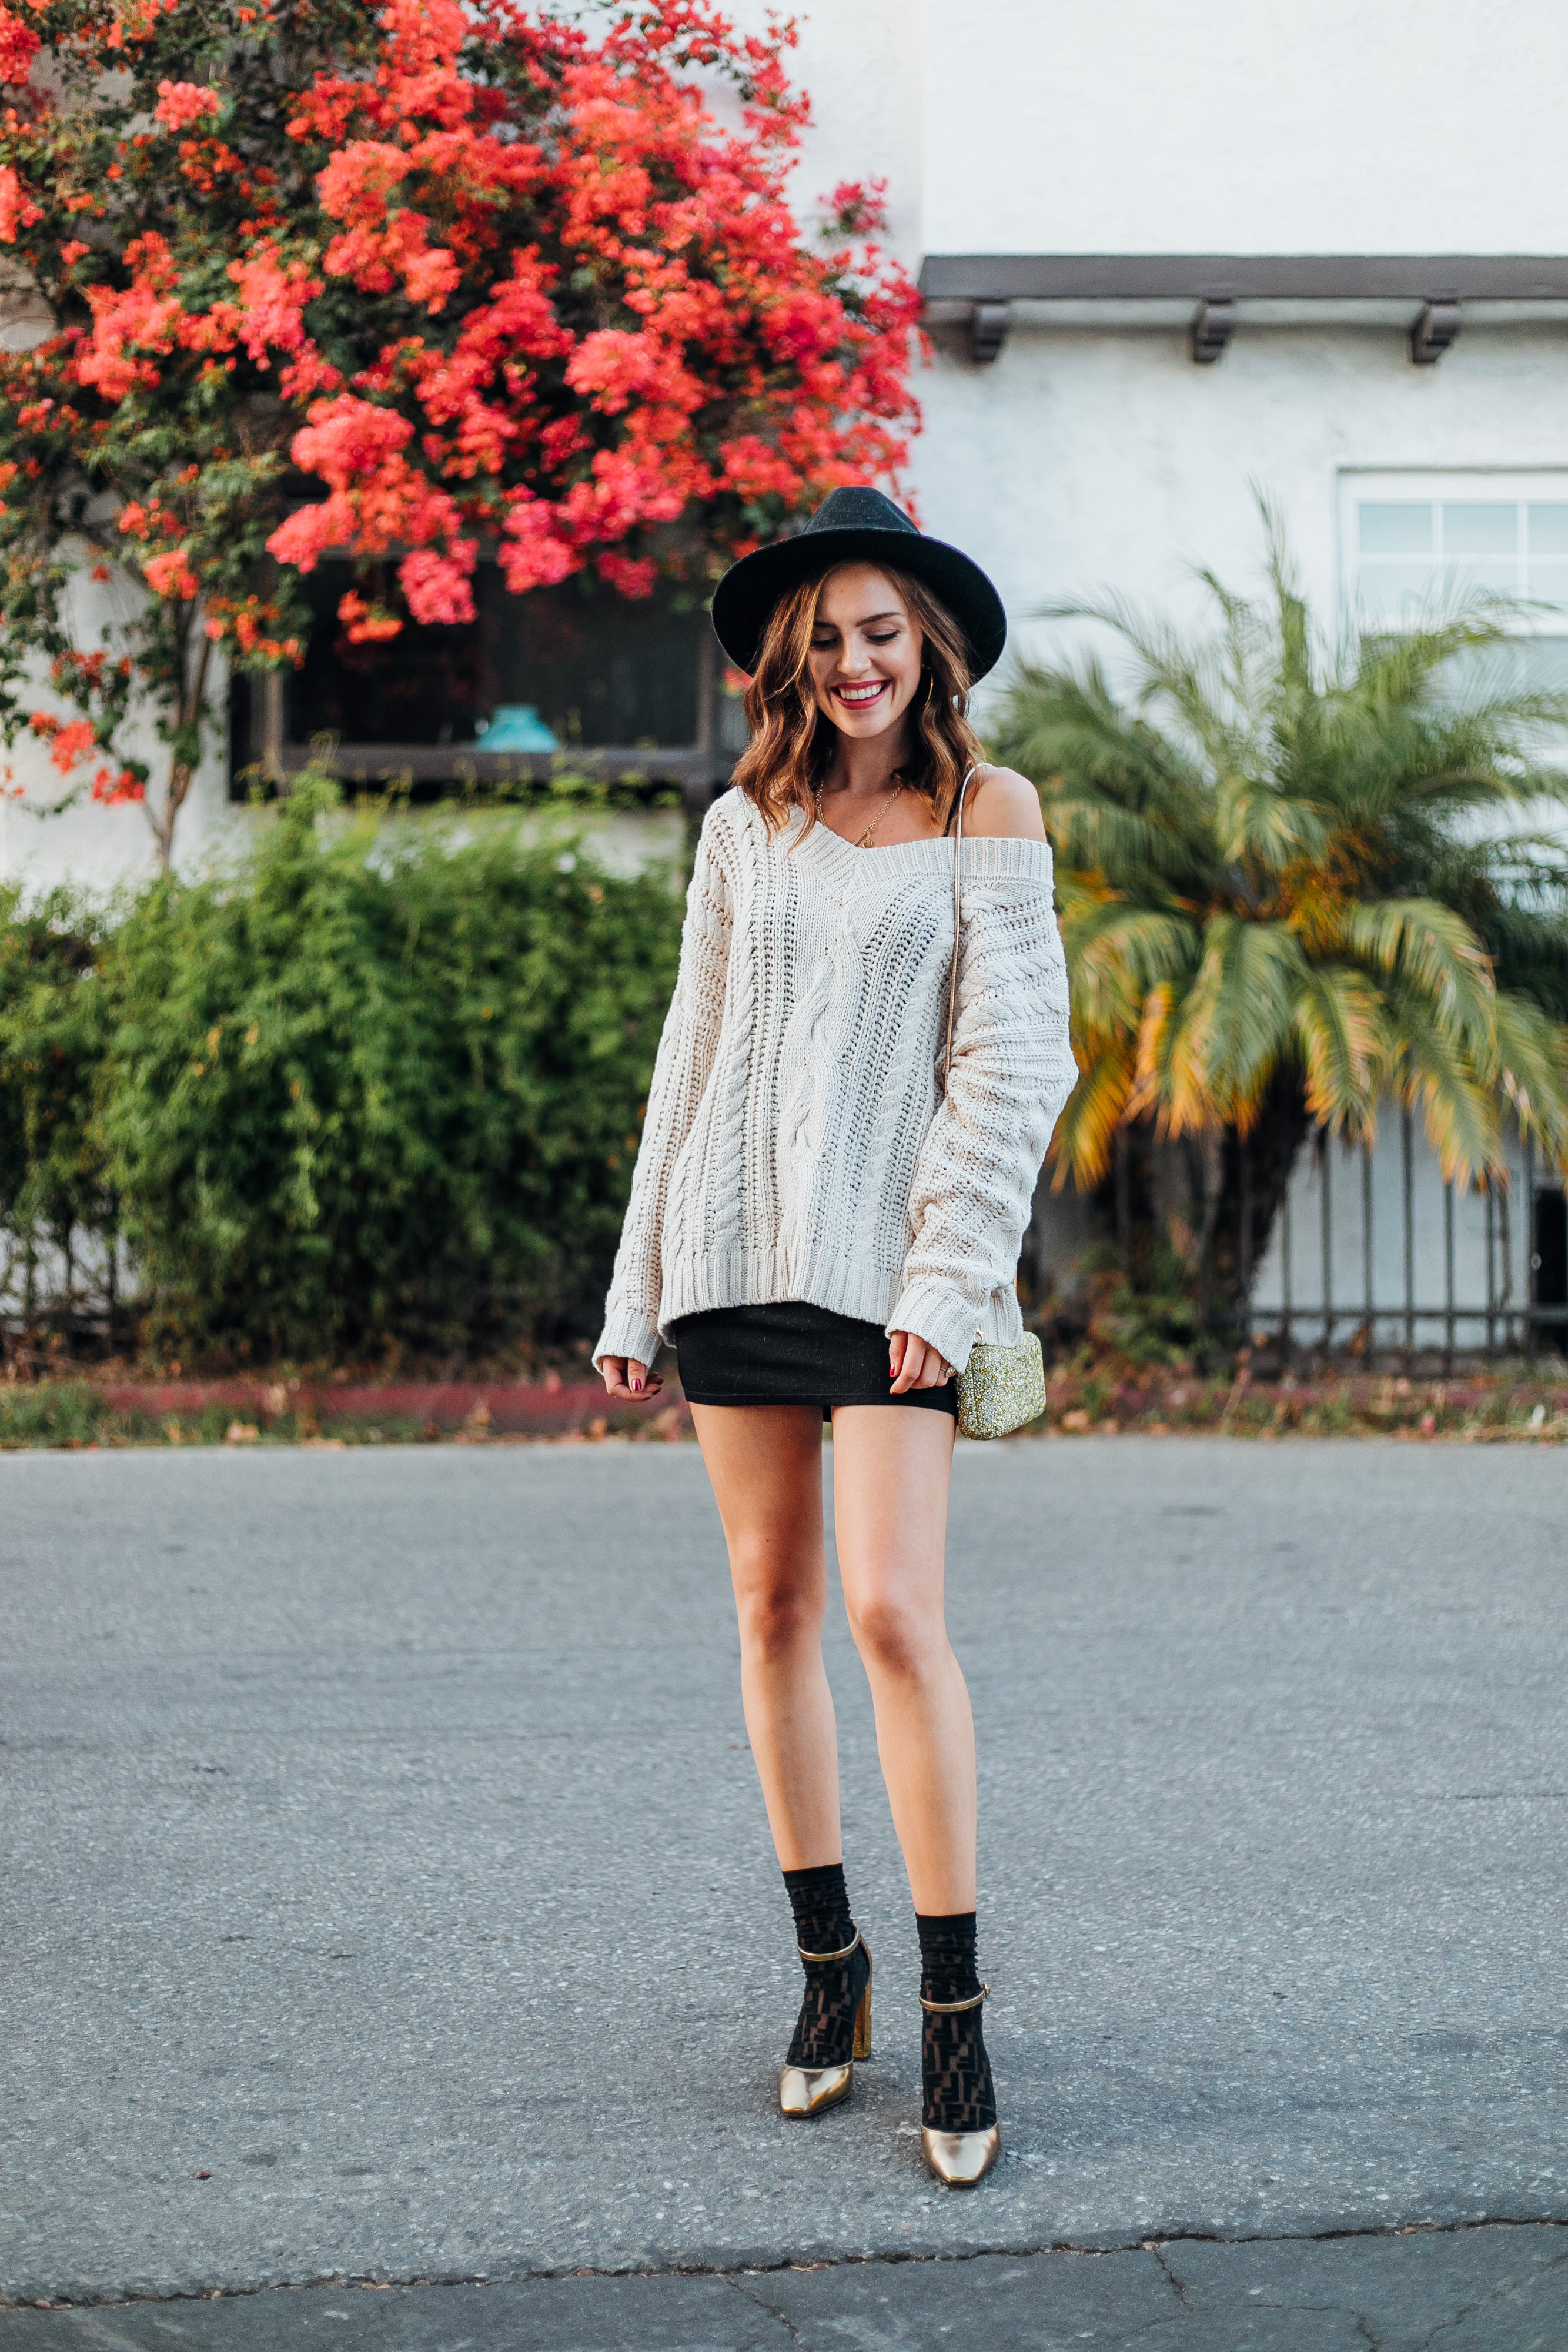 919c1a7d62052 Another great way to style them is with a big, poofy tulle skirt, a graphic  tee, jean jacket, socks and heels. I totally would've shot this look for  you as ...